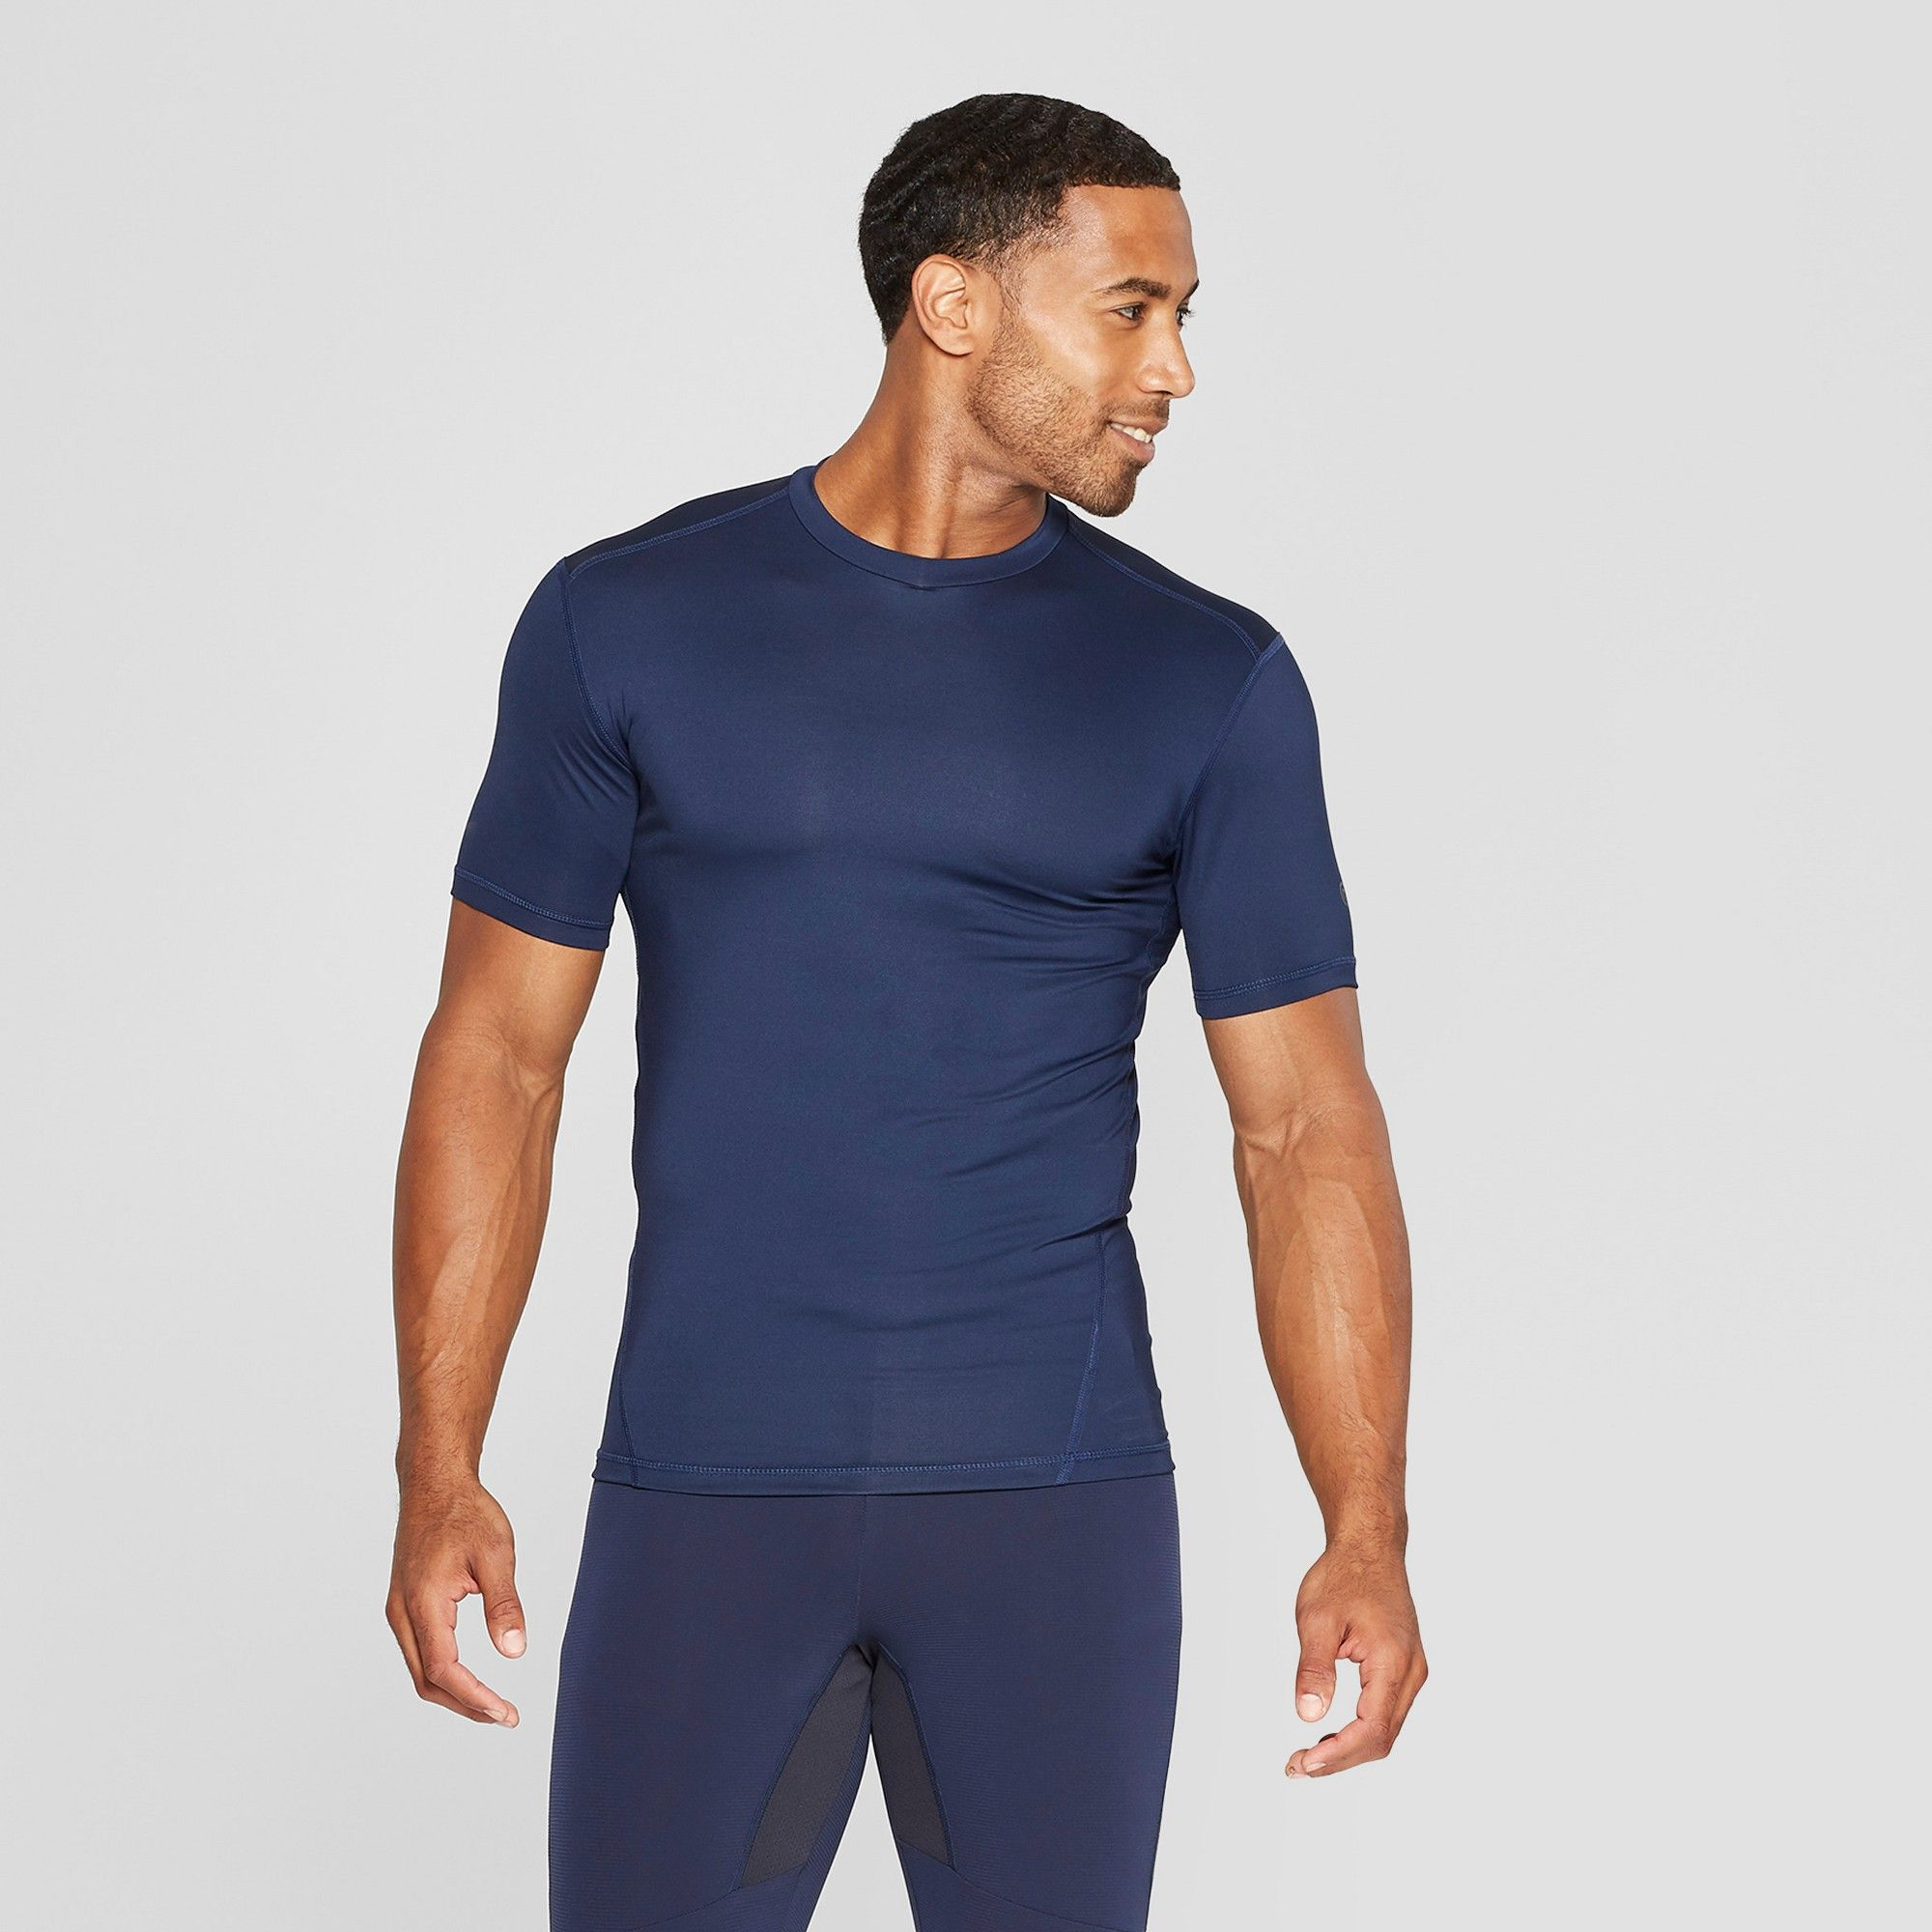 Mens fitted short sleeve compression tshirt c9